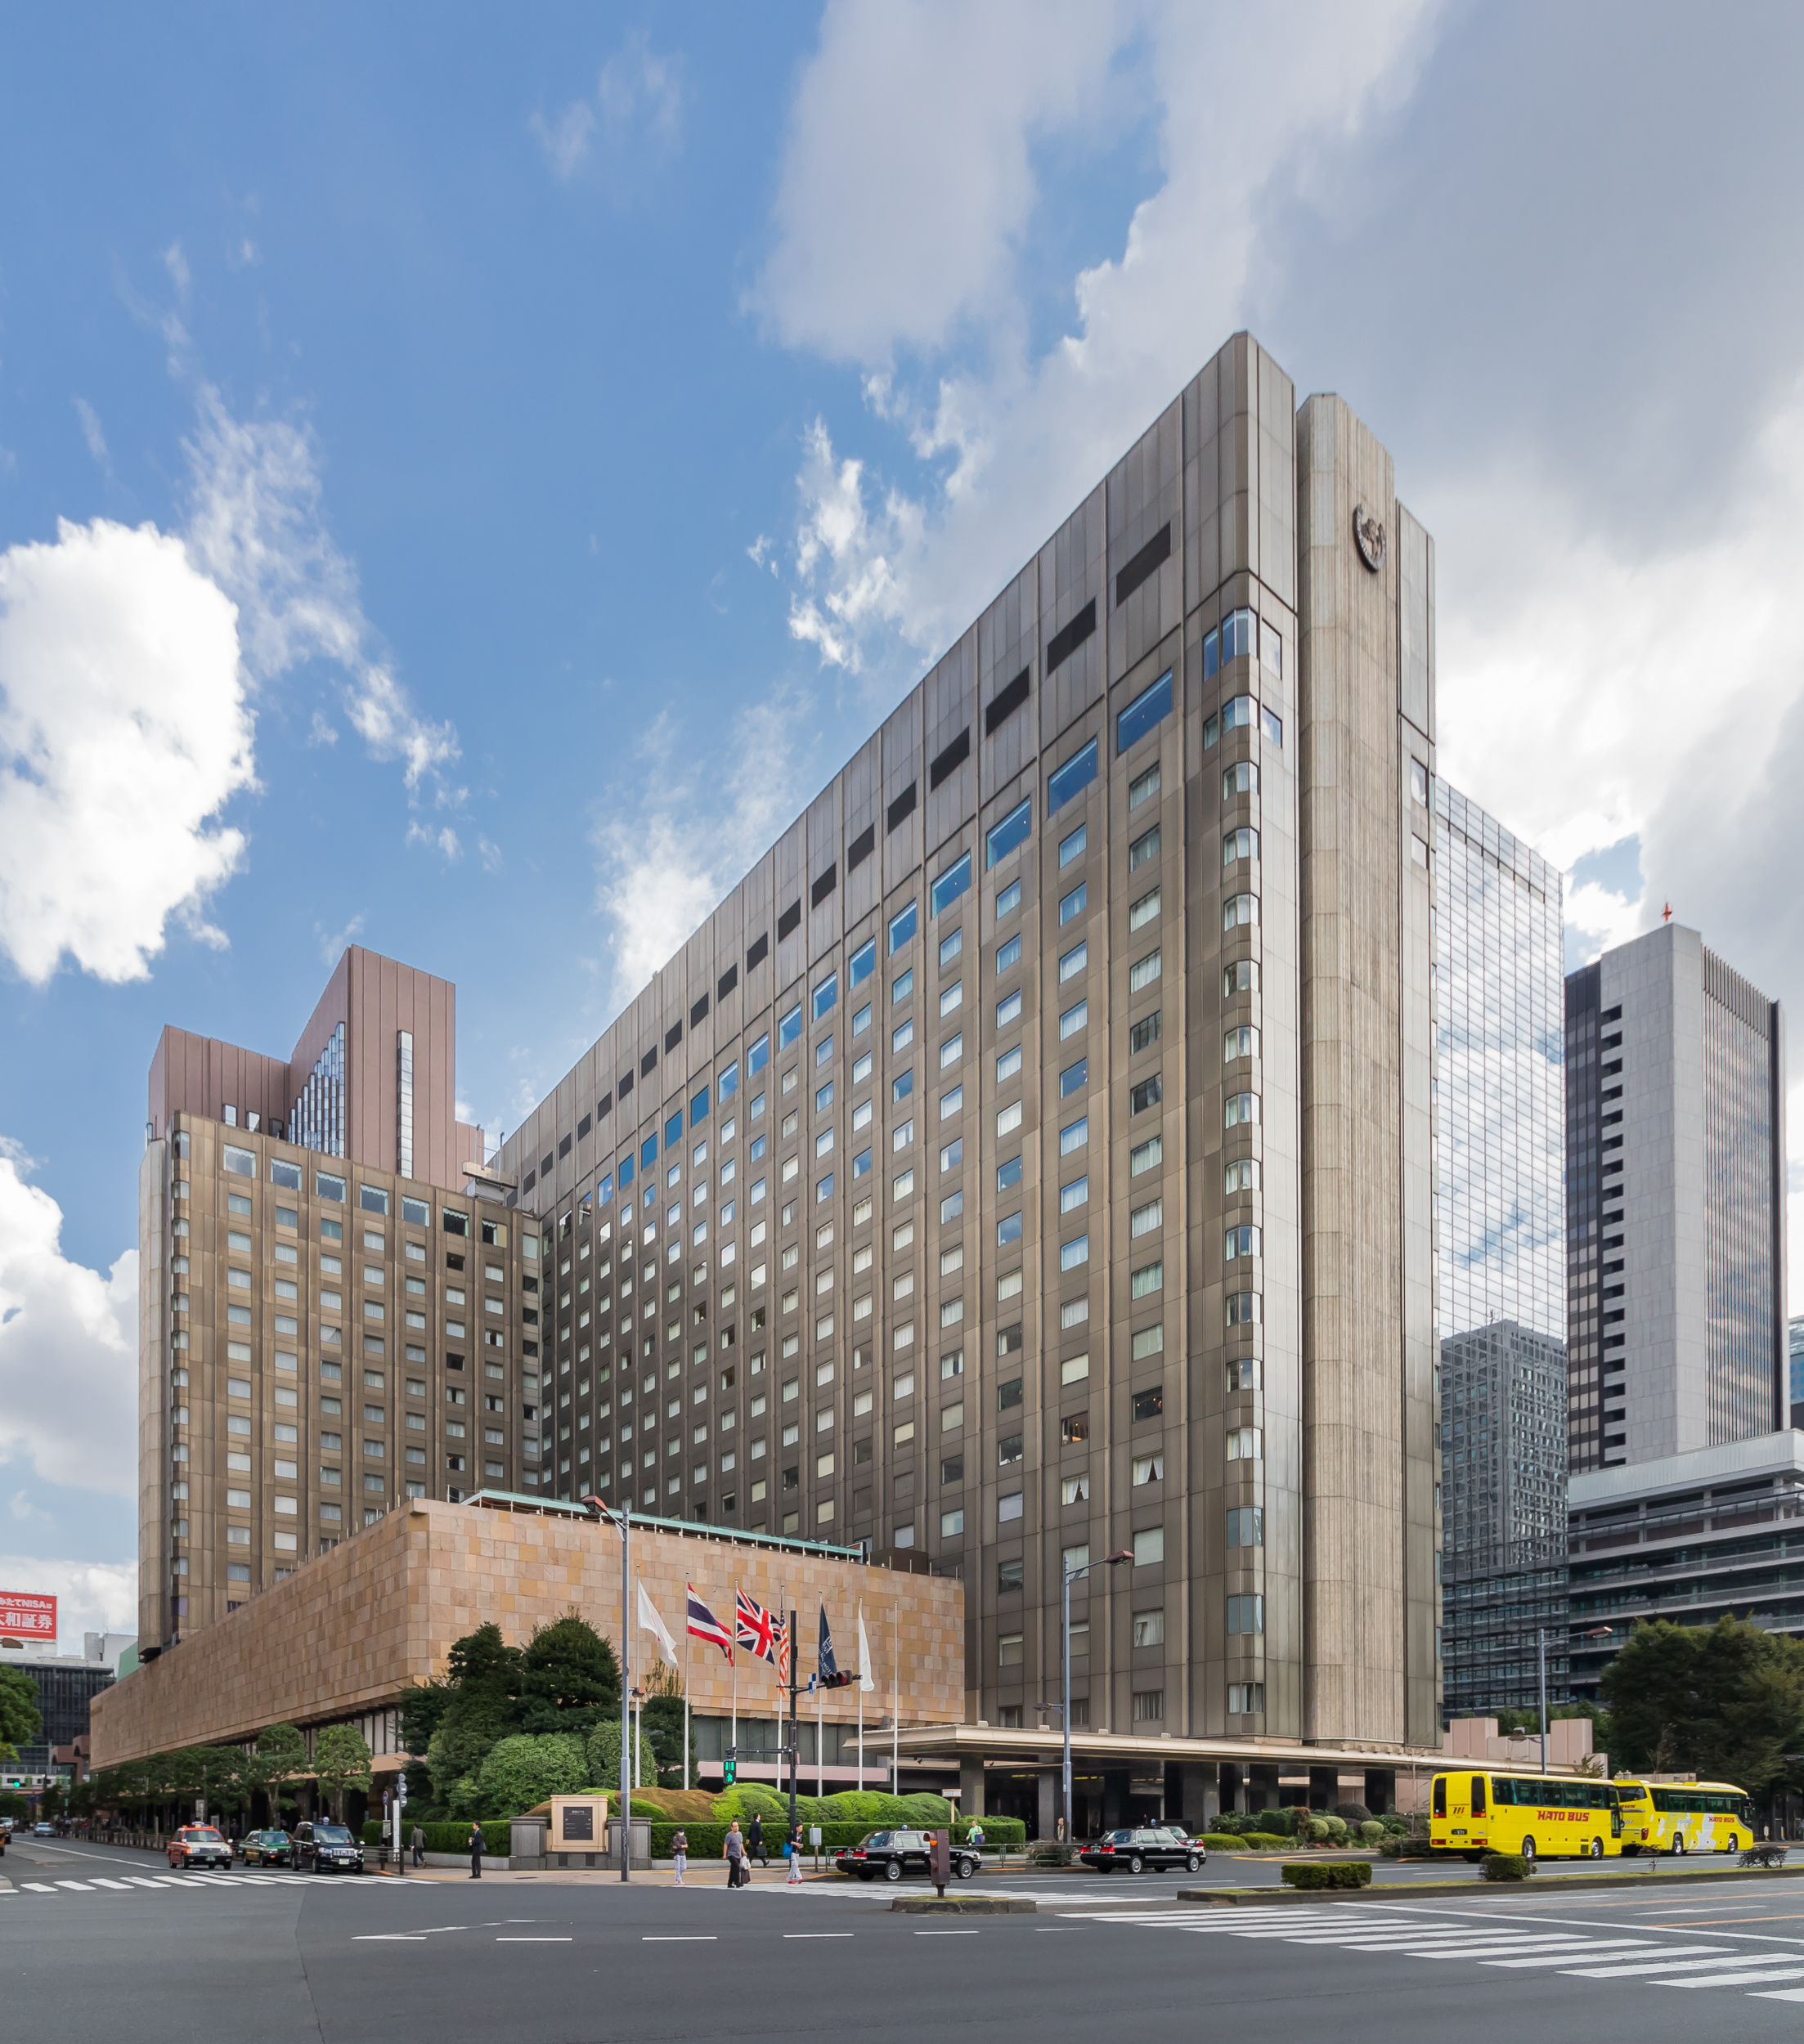 Imperial Hotel Tokyo Wikipedia